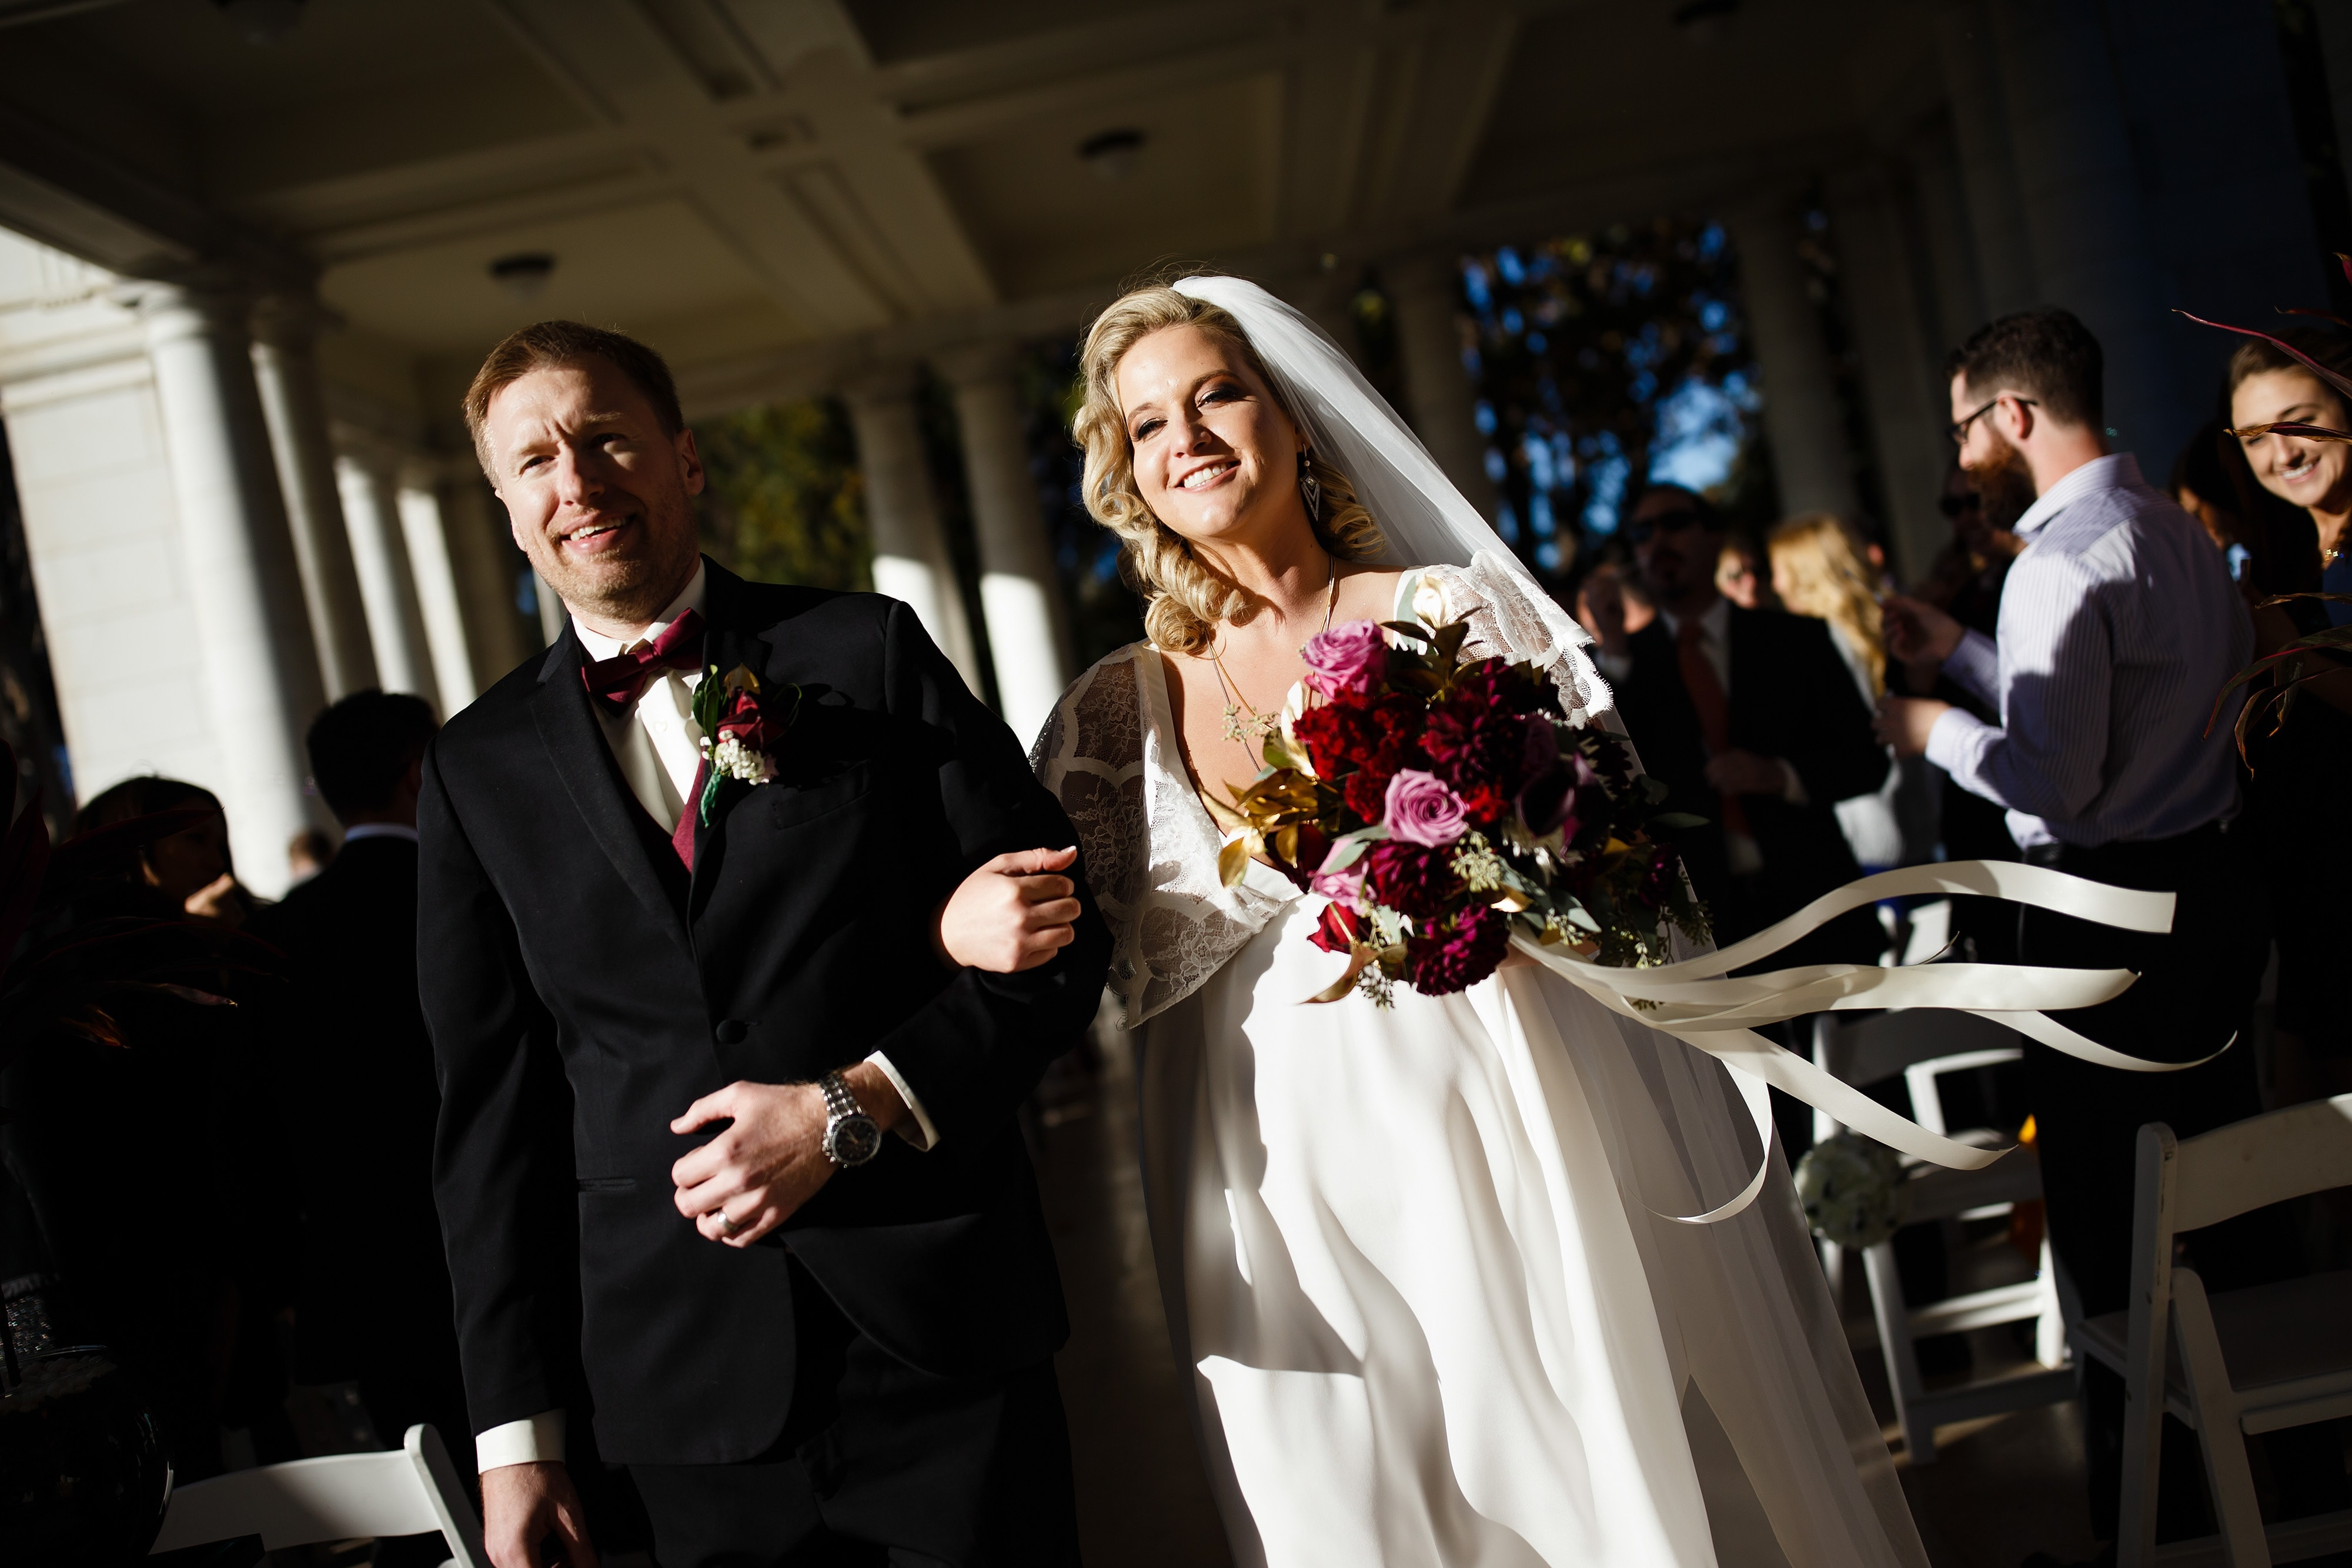 Ryan and Sarah walk down the aisle as husband and wife after their Cheesman Park wedding ceremony in Denver